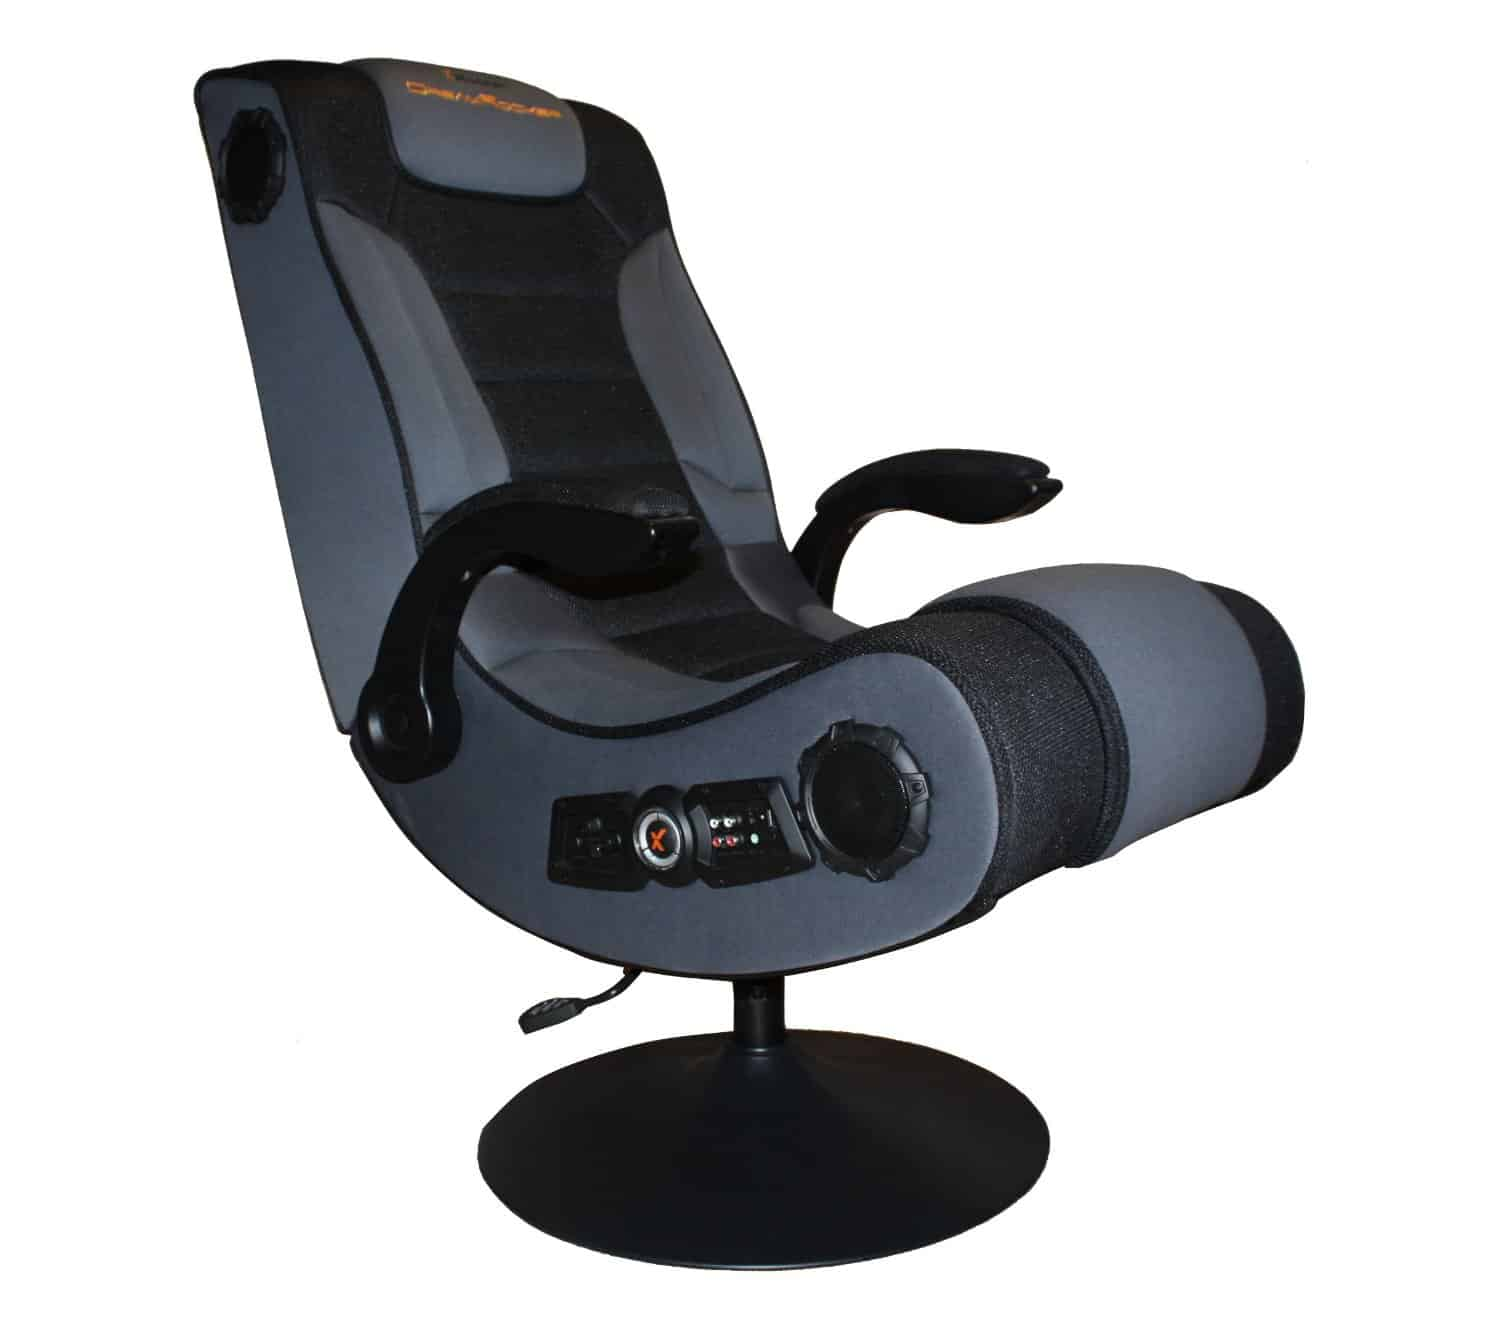 Groovy X Rocker Gaming Chair Ps3 X Rocker Gaming Chair Offiziell Frankydiablos Diy Chair Ideas Frankydiabloscom